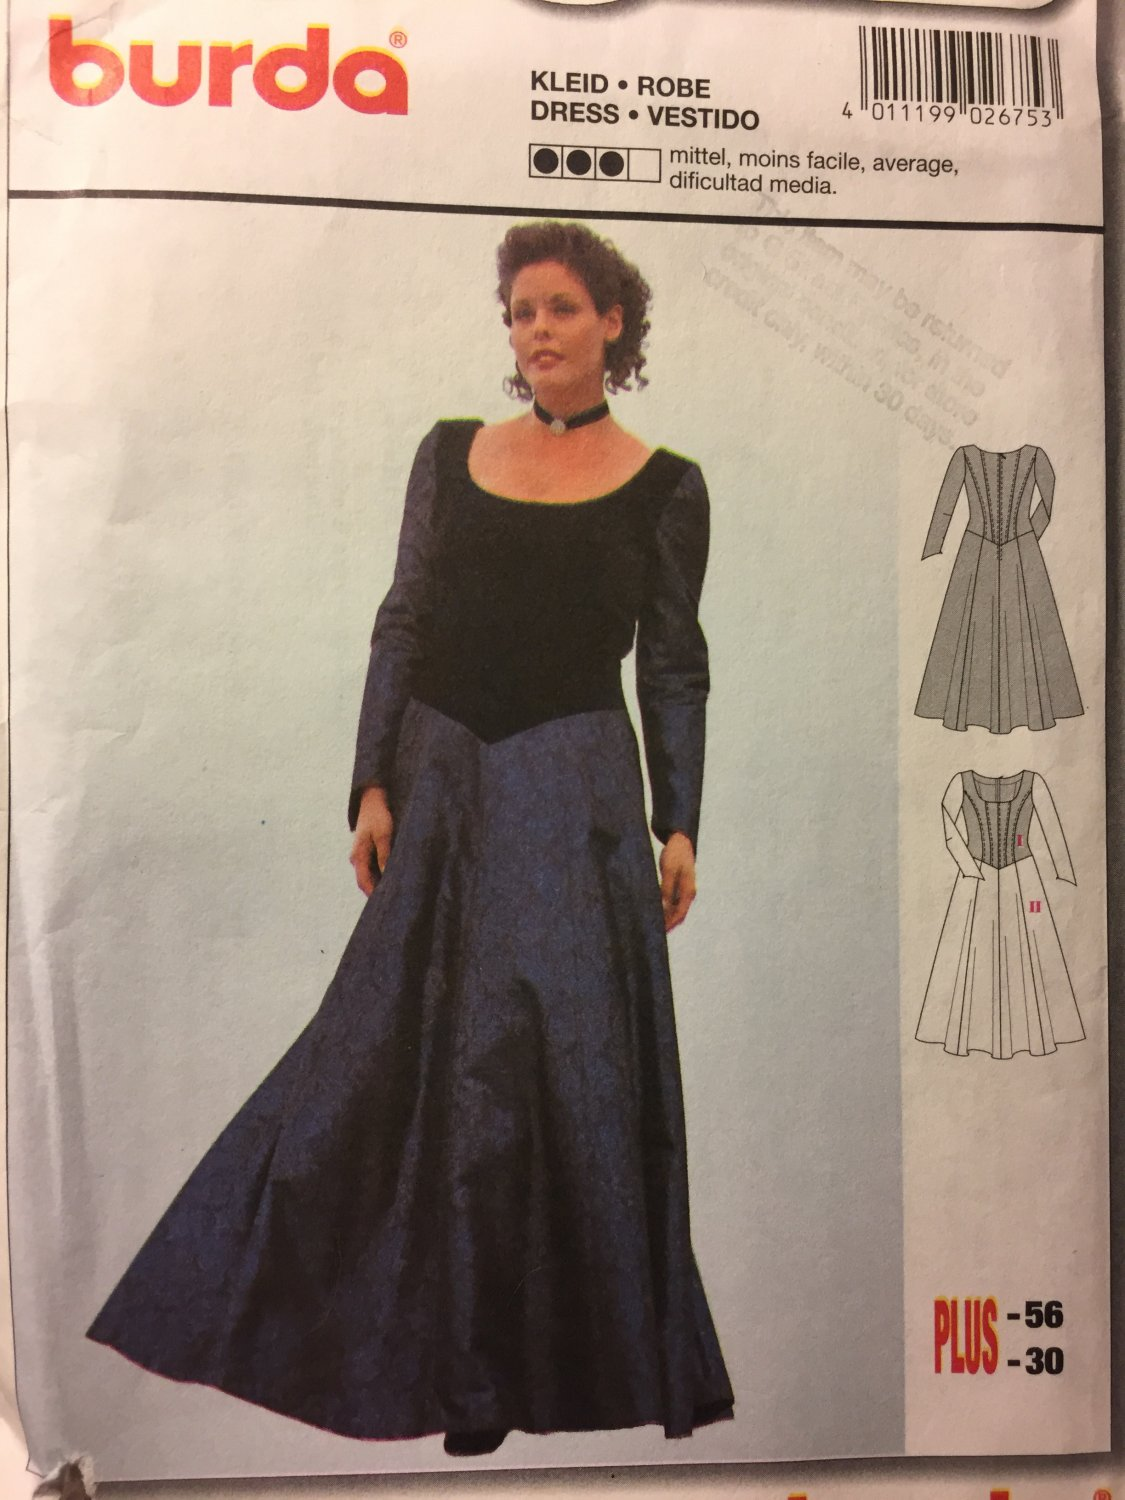 Burda 2675 Misses formal evening gown dress Sewing Pattern Sizes 20 to 30